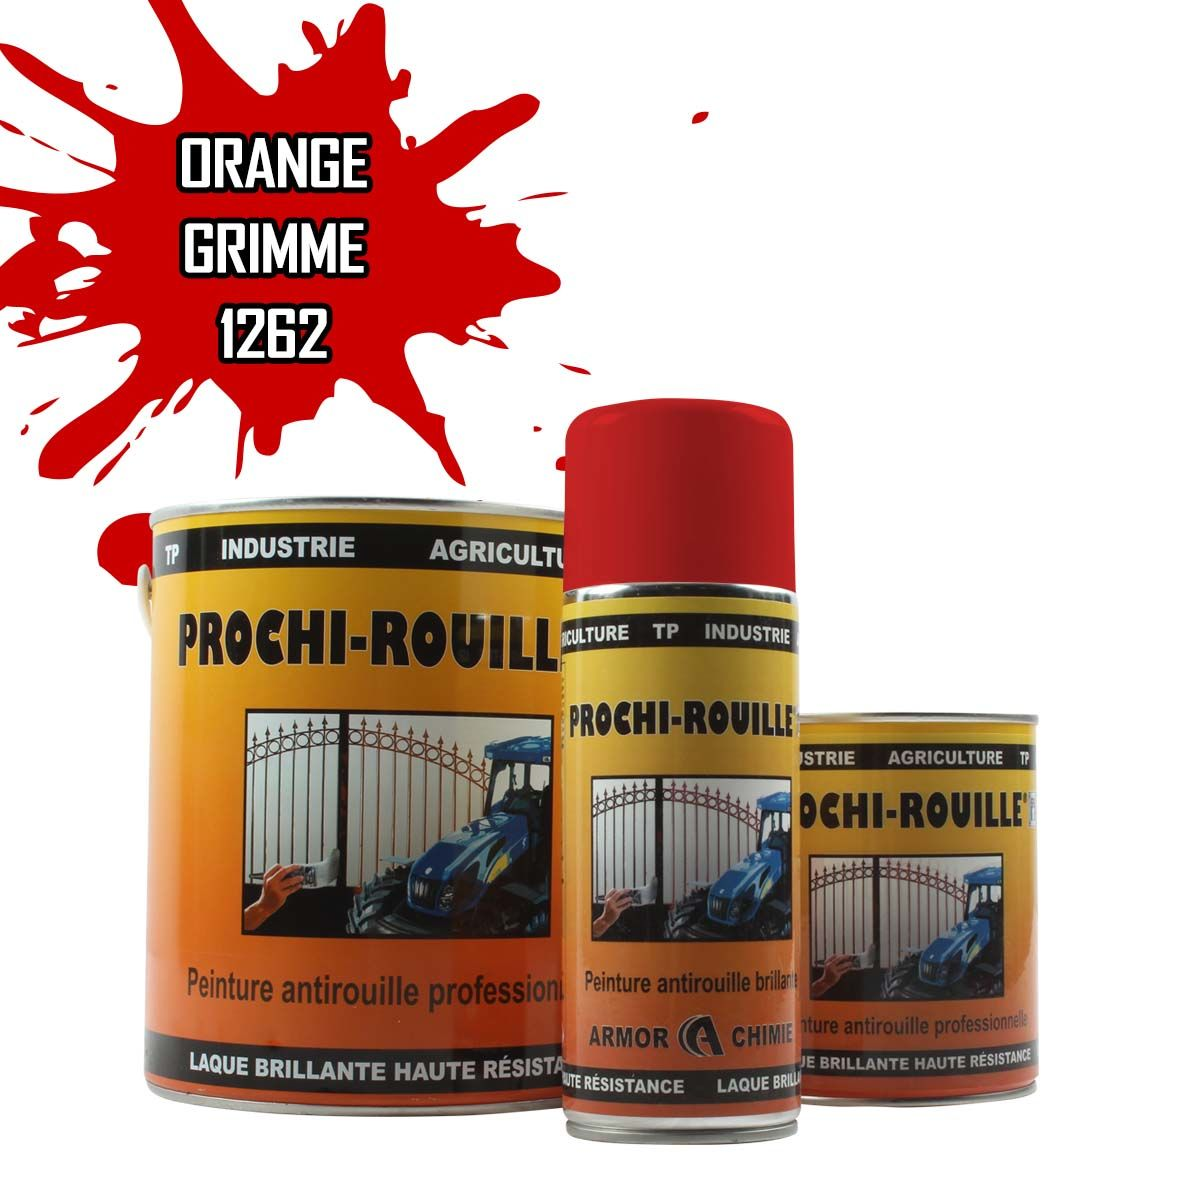 Peinture agricole PROCHI-ROUILLE brillante, Orange, 1262, GRIMME